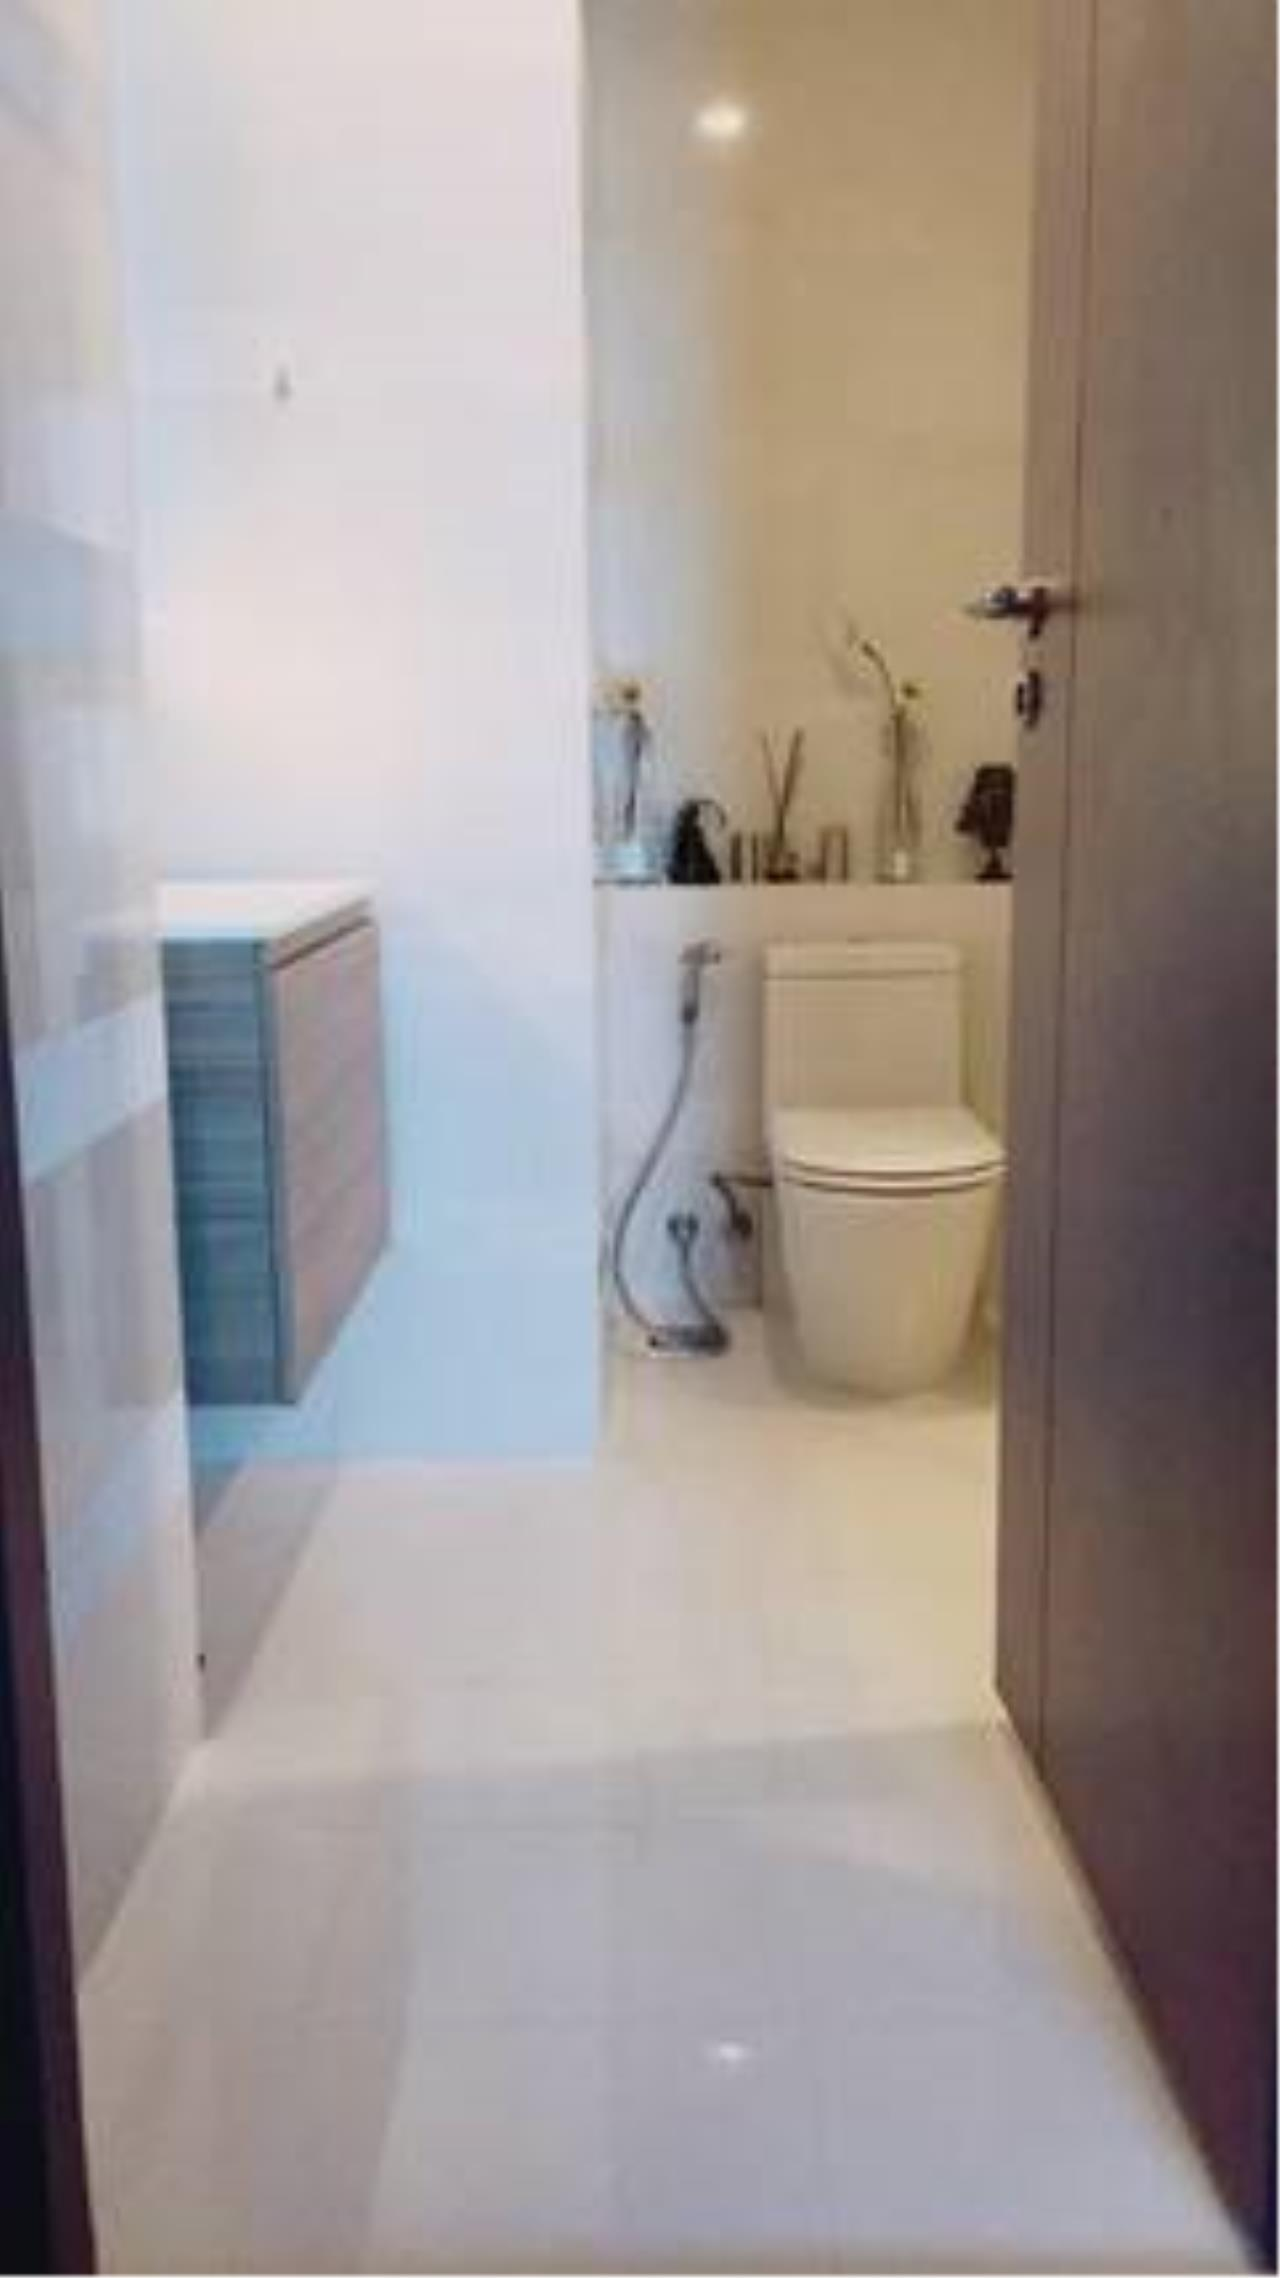 RE/MAX All Star Realty Agency's Keyne by Sansiri for sale/rent (BTS Thong Lor) 5